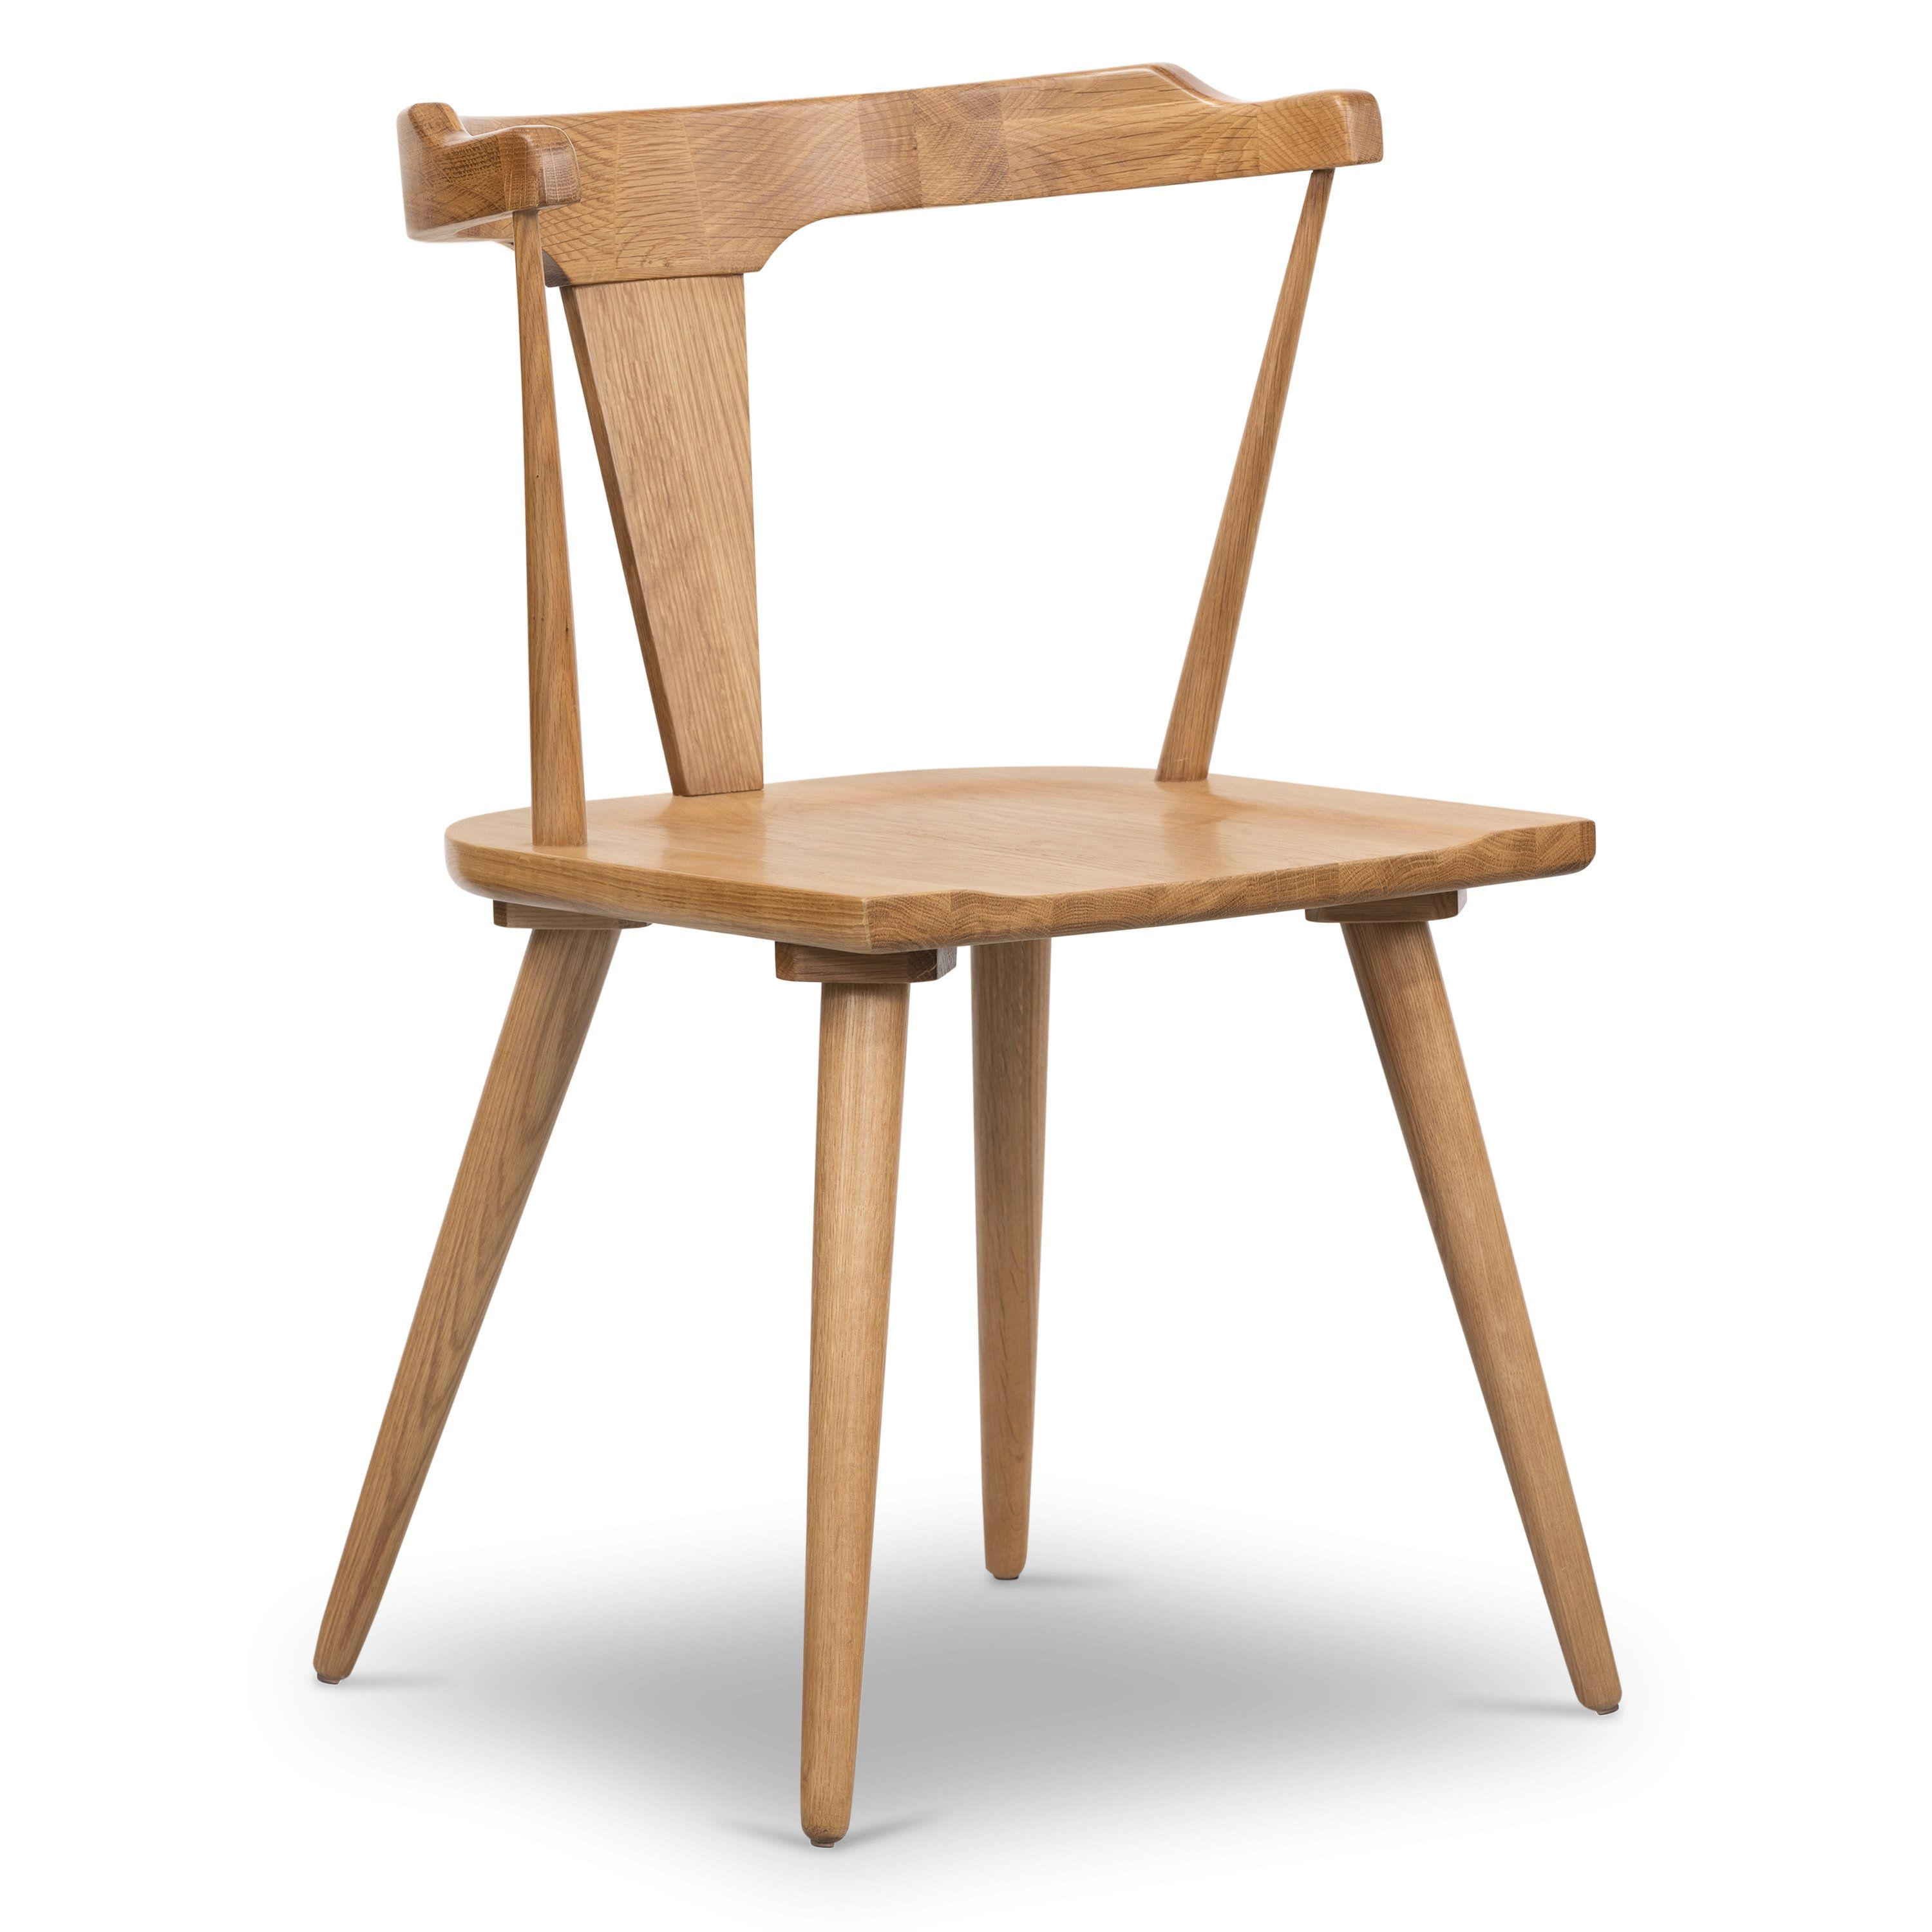 Enzo Dining Chair In 2021 Wood Side Chair Dining Chairs Natural Wood Table Low profile dining chairs